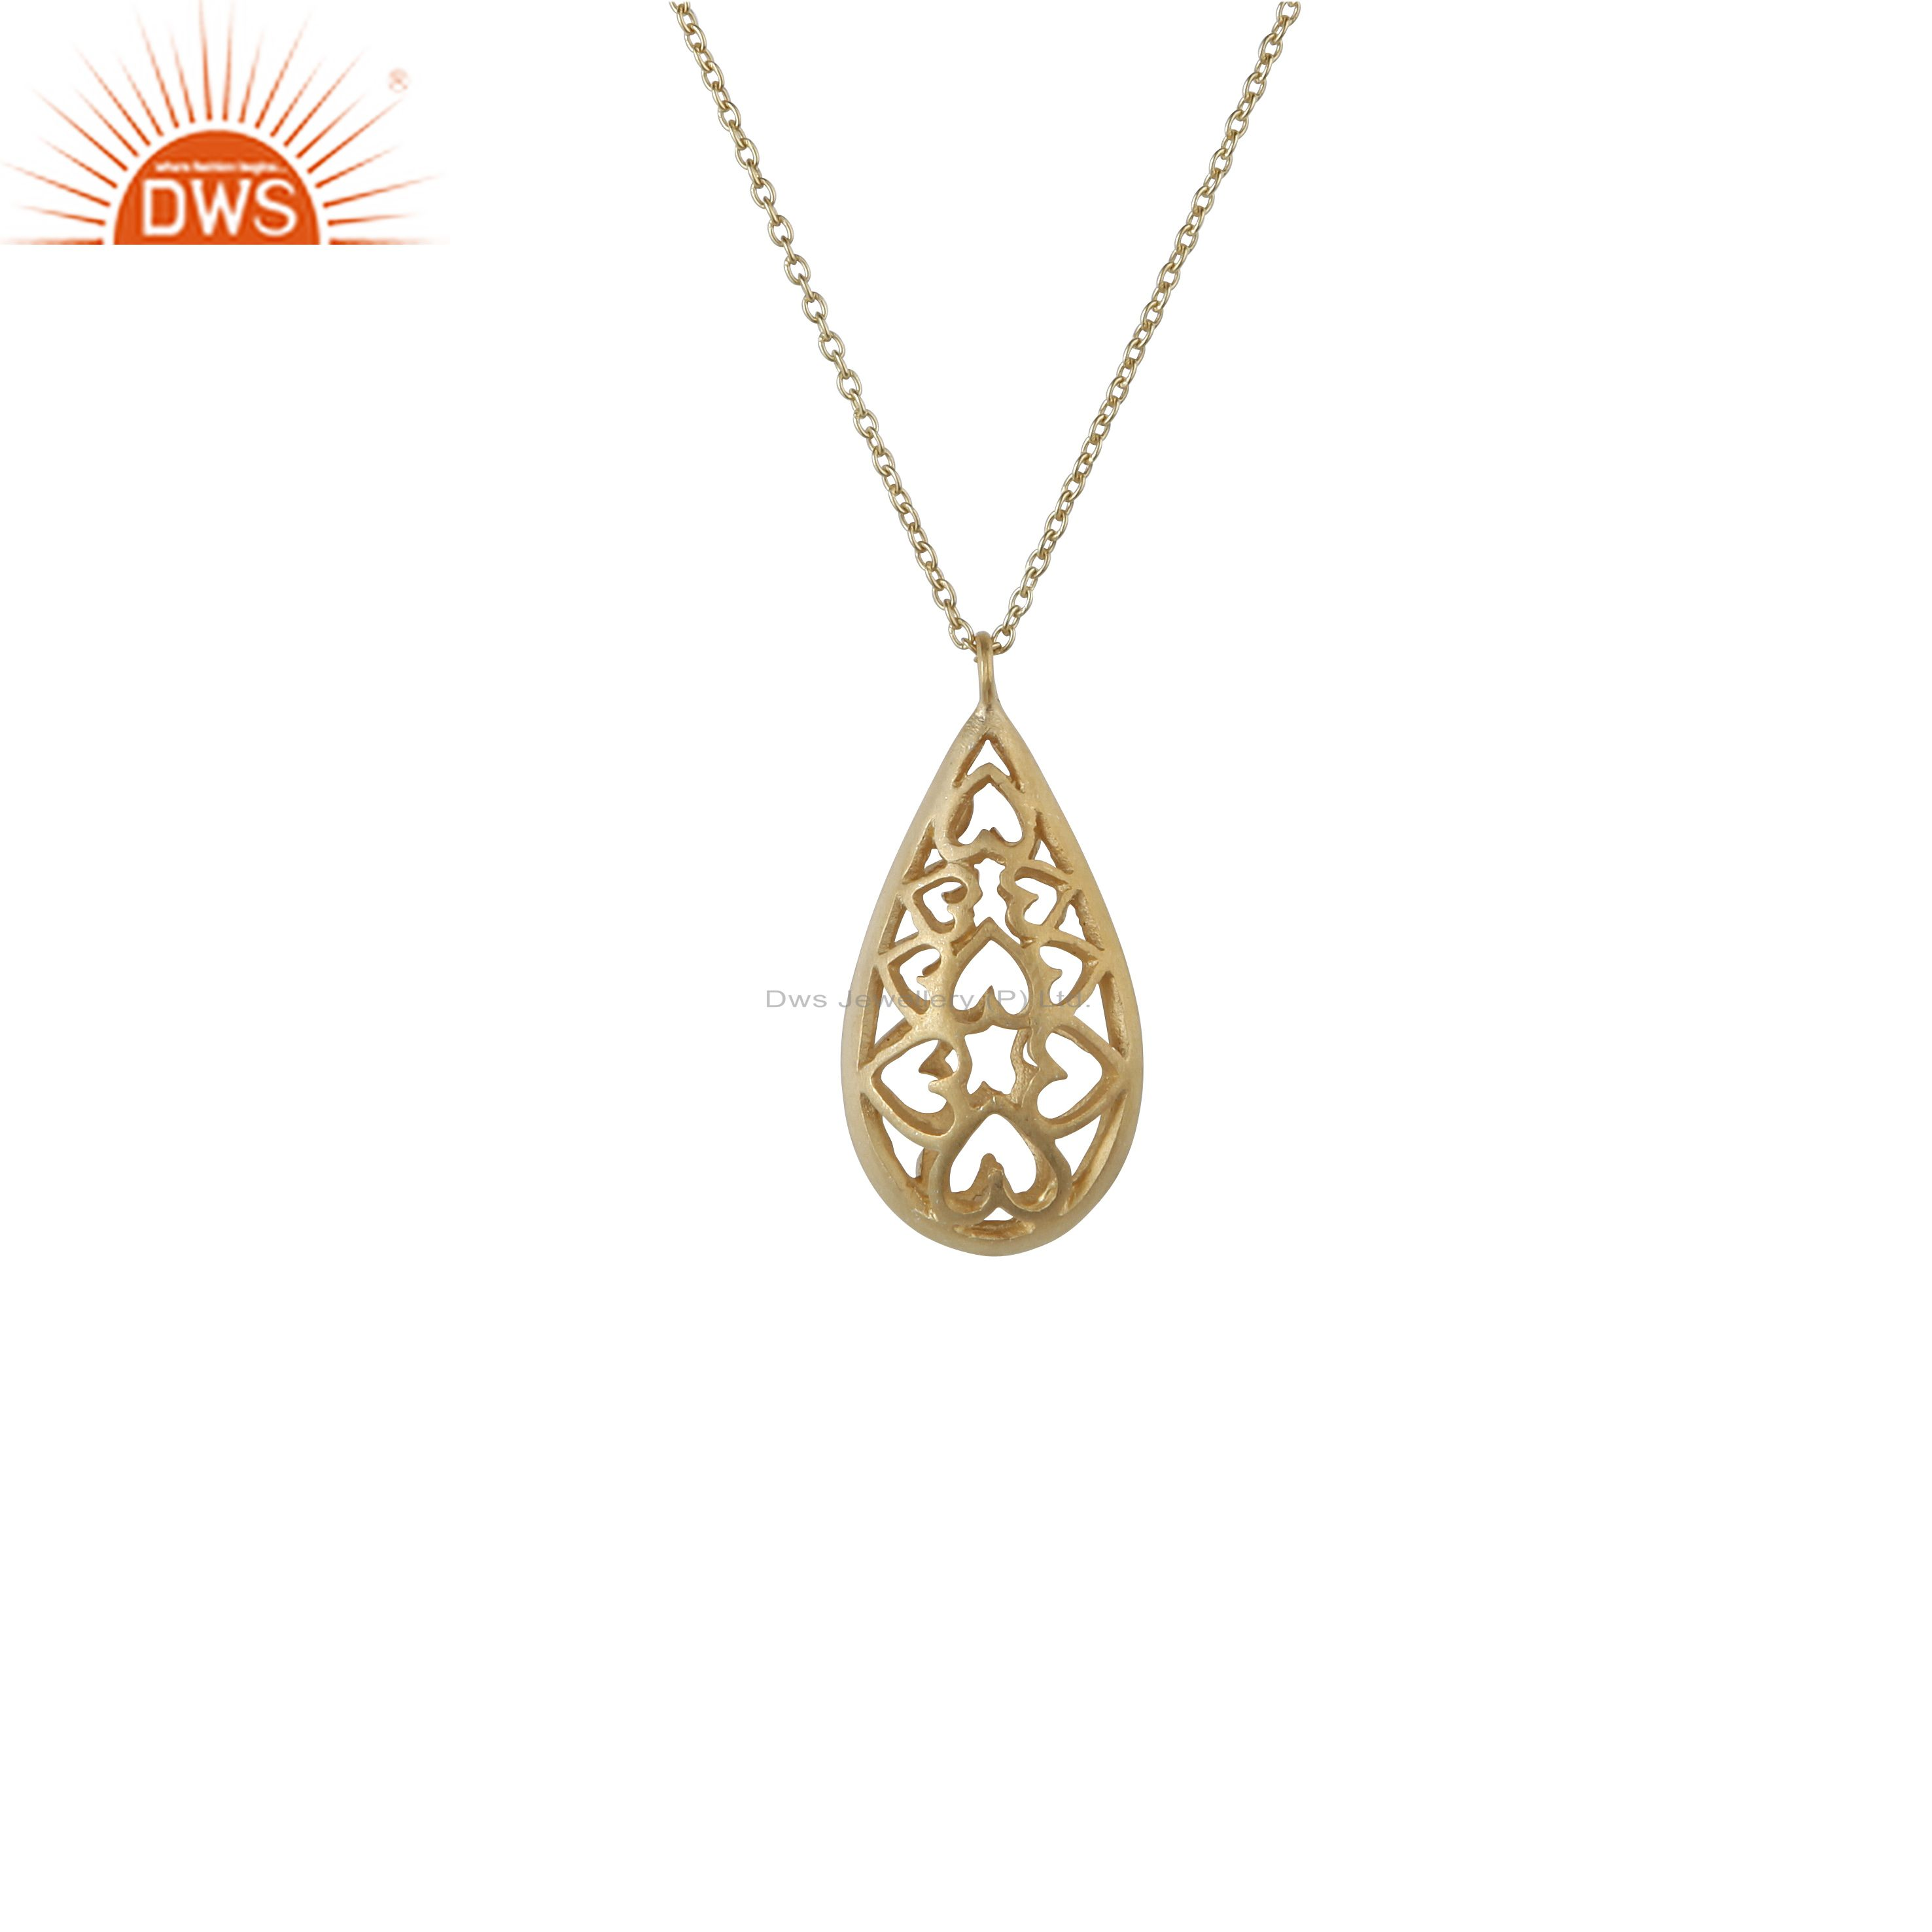 14k yellow gold plated sterling silver heart designer pendant with chain